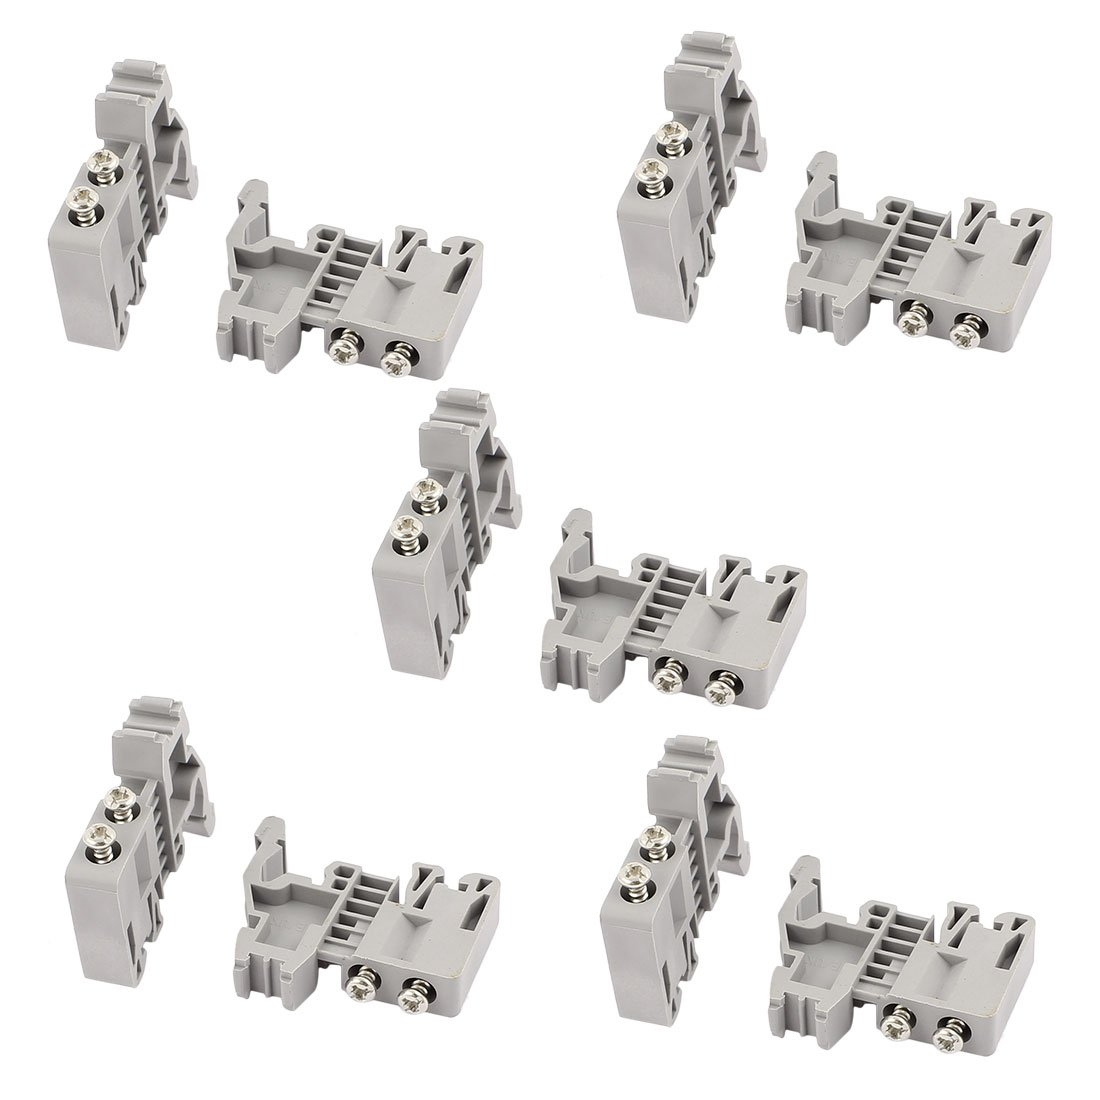 uxcell 10 Pcs E-UK 35mm DIN Rail End Screw Clamp Terminal Fixed Block Gray